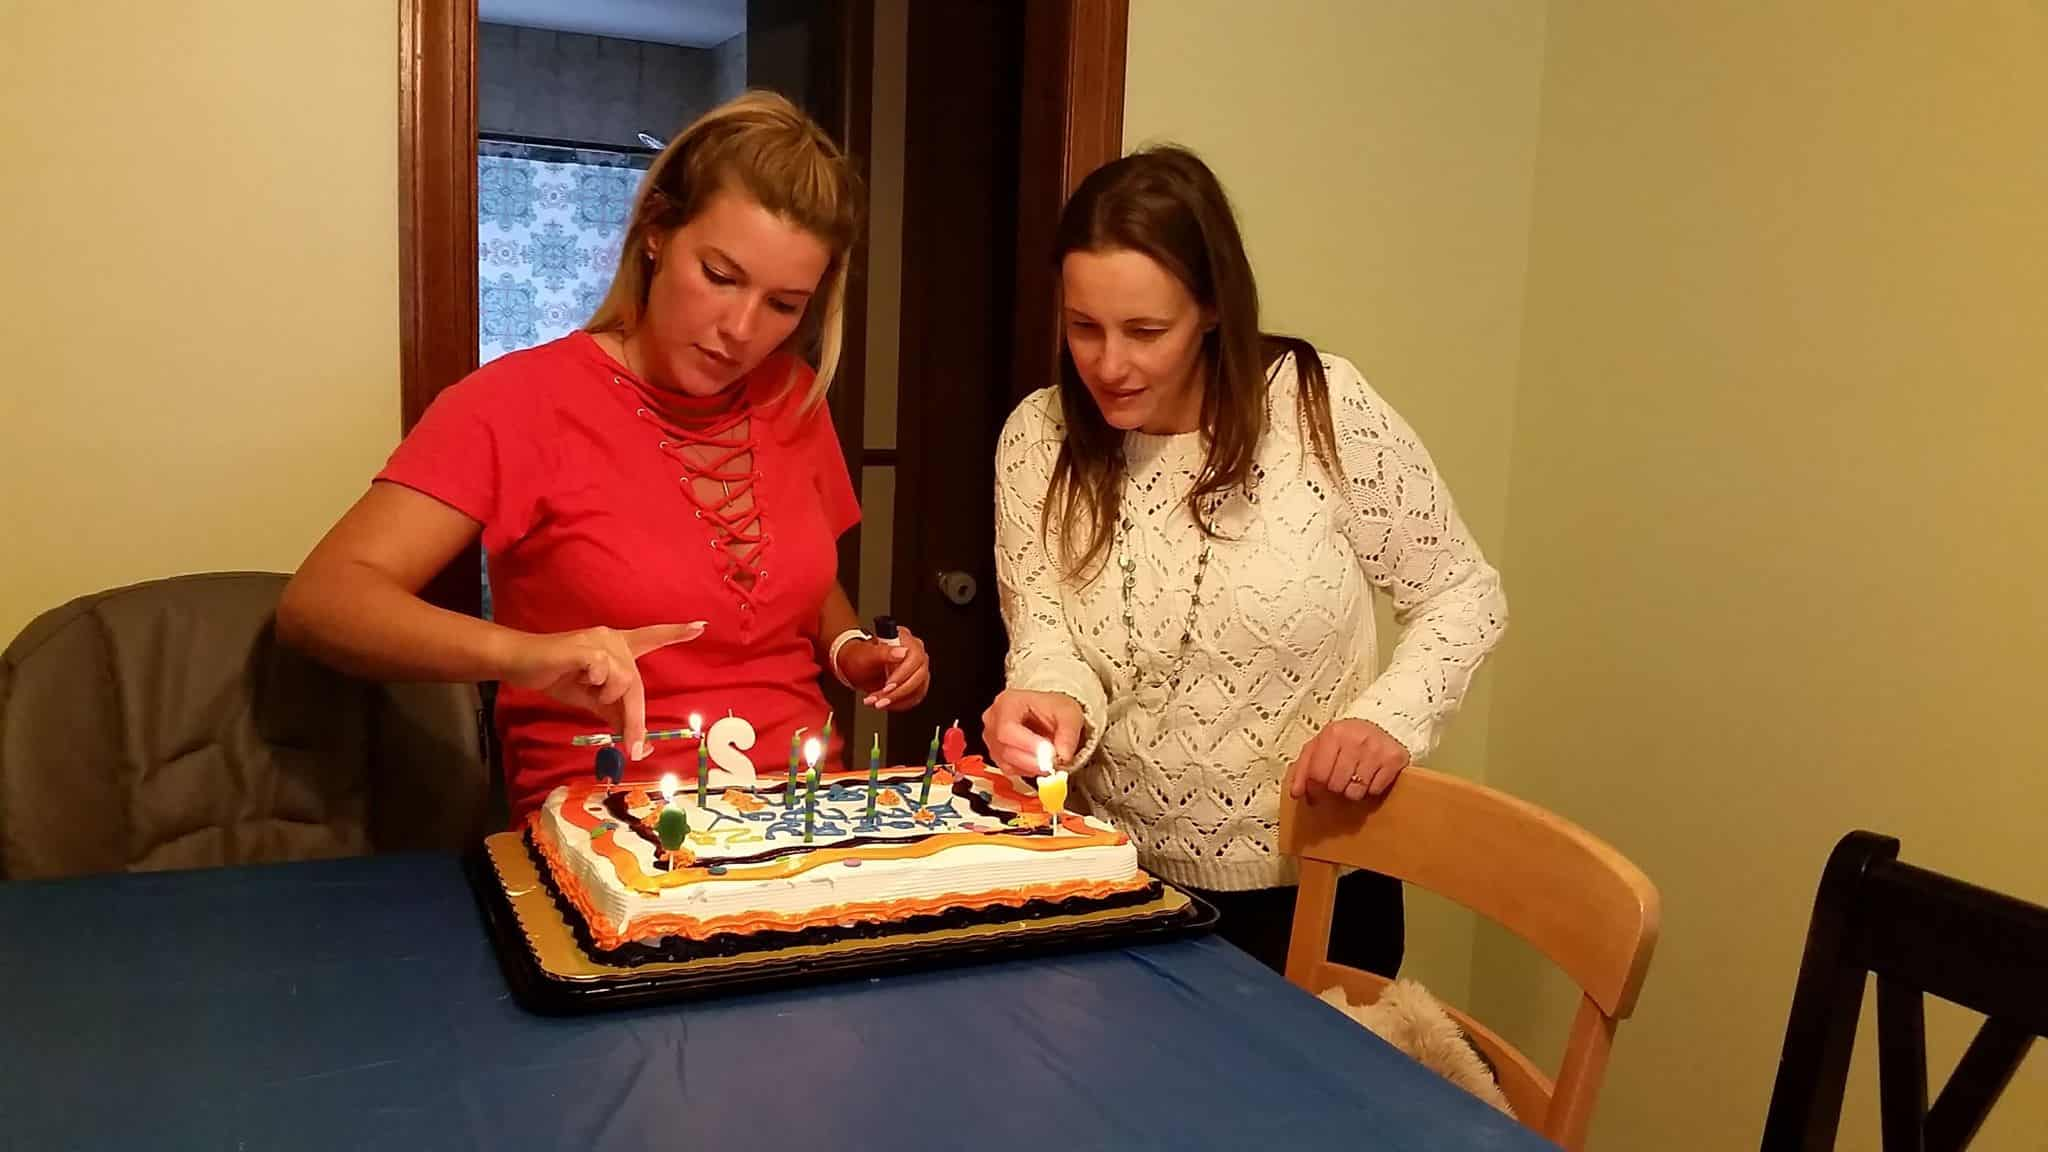 A small group of women surrounding a birthday cake.